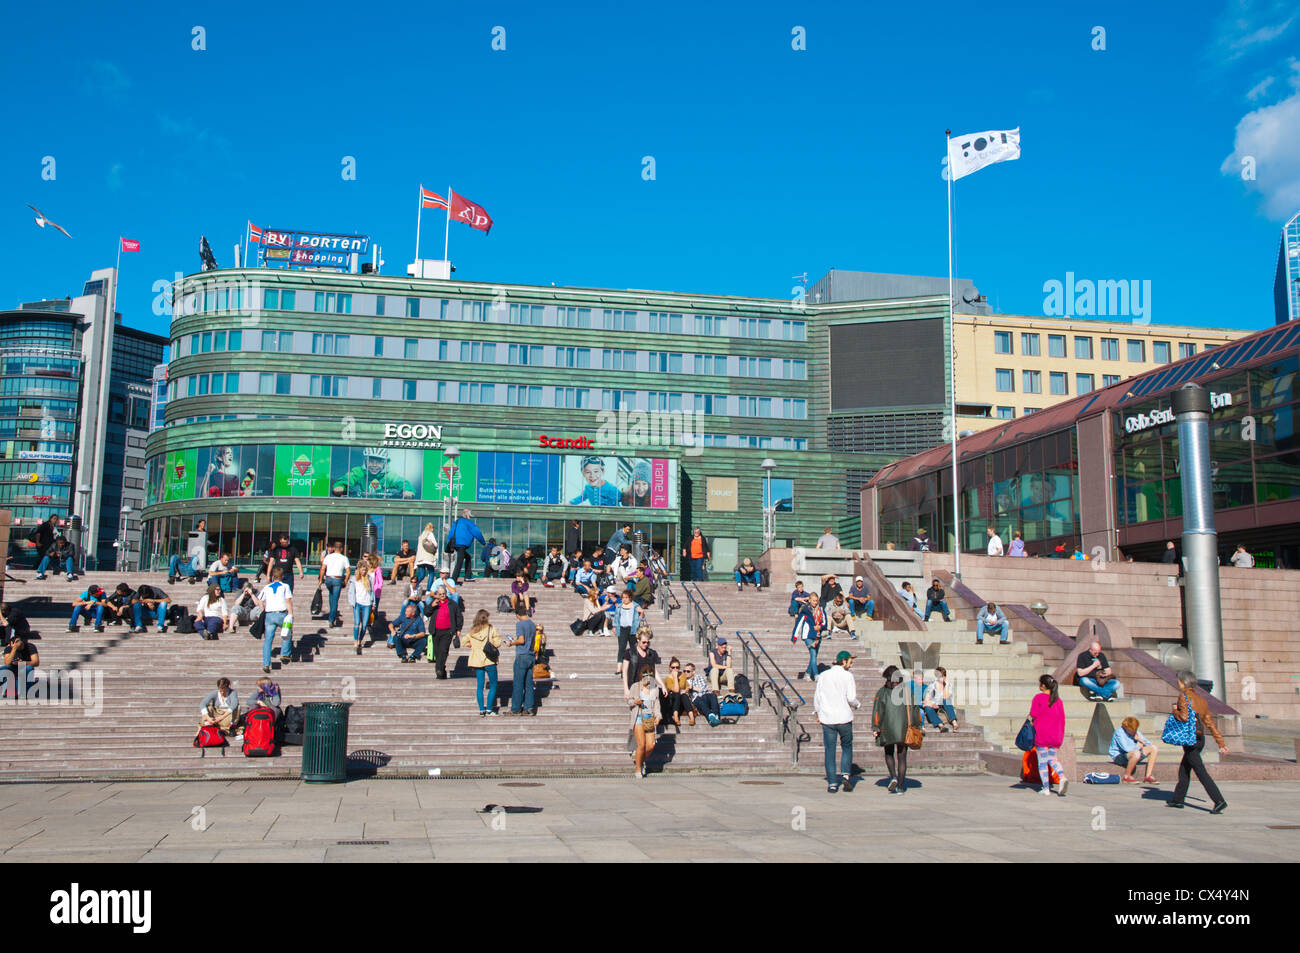 Jernbanetorget square in front of main railway station Sentrum central Oslo Norway Europe - Stock Image